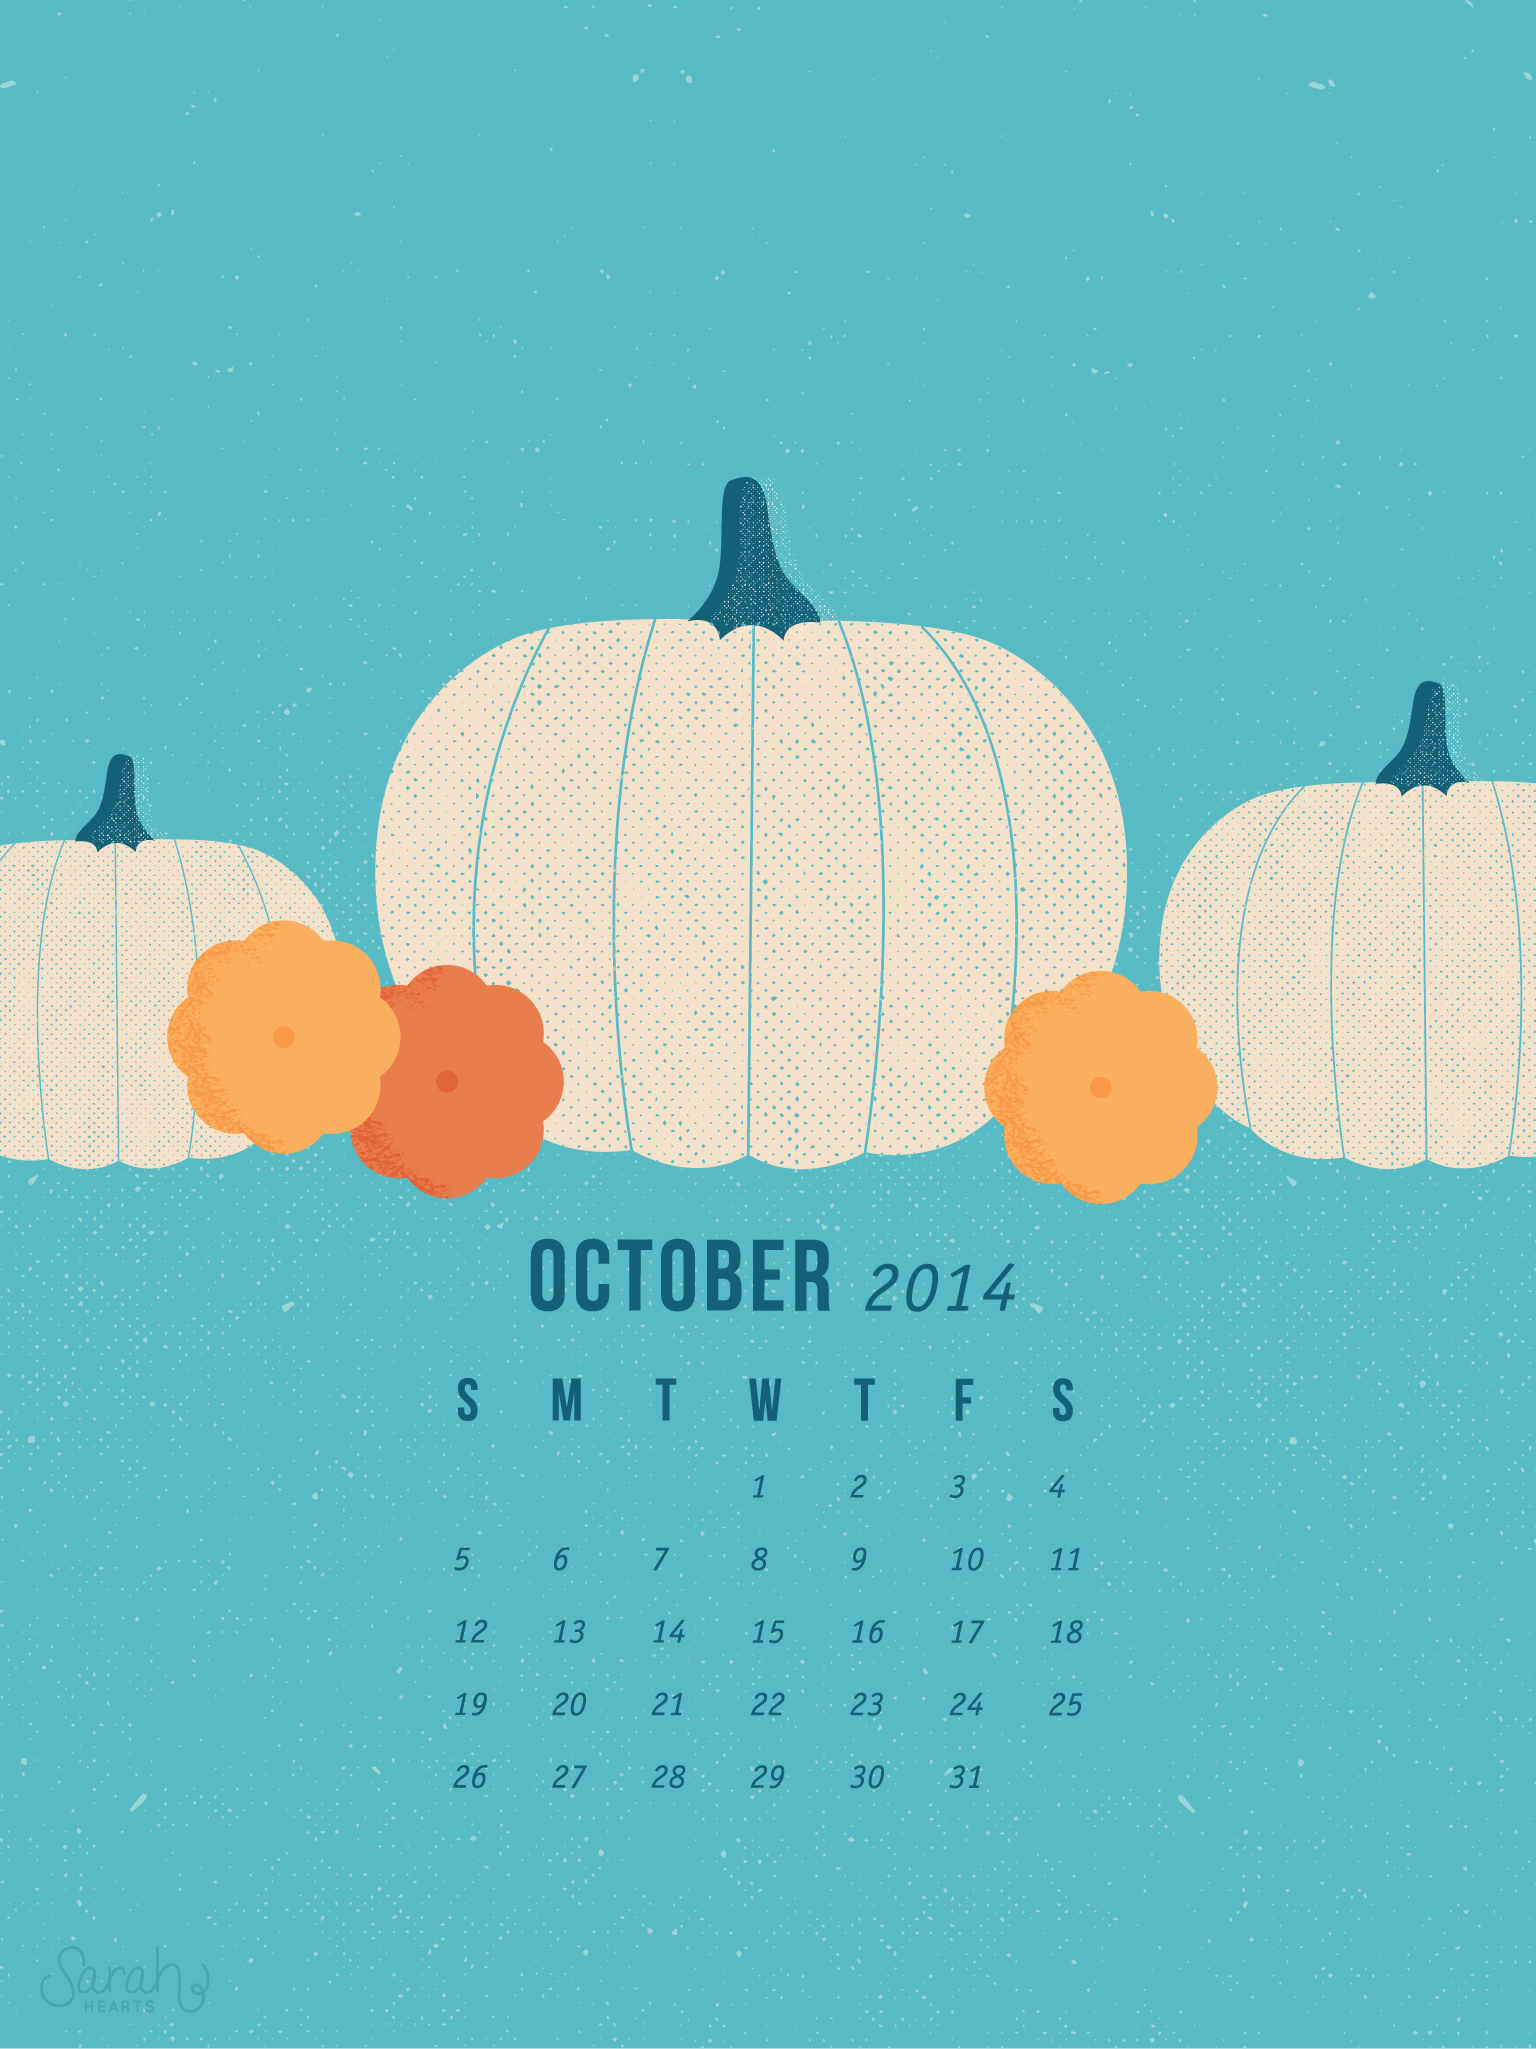 Fall White Pumpkins Wallpaper October 2014 Calendar Wallpapers Sarah Hearts